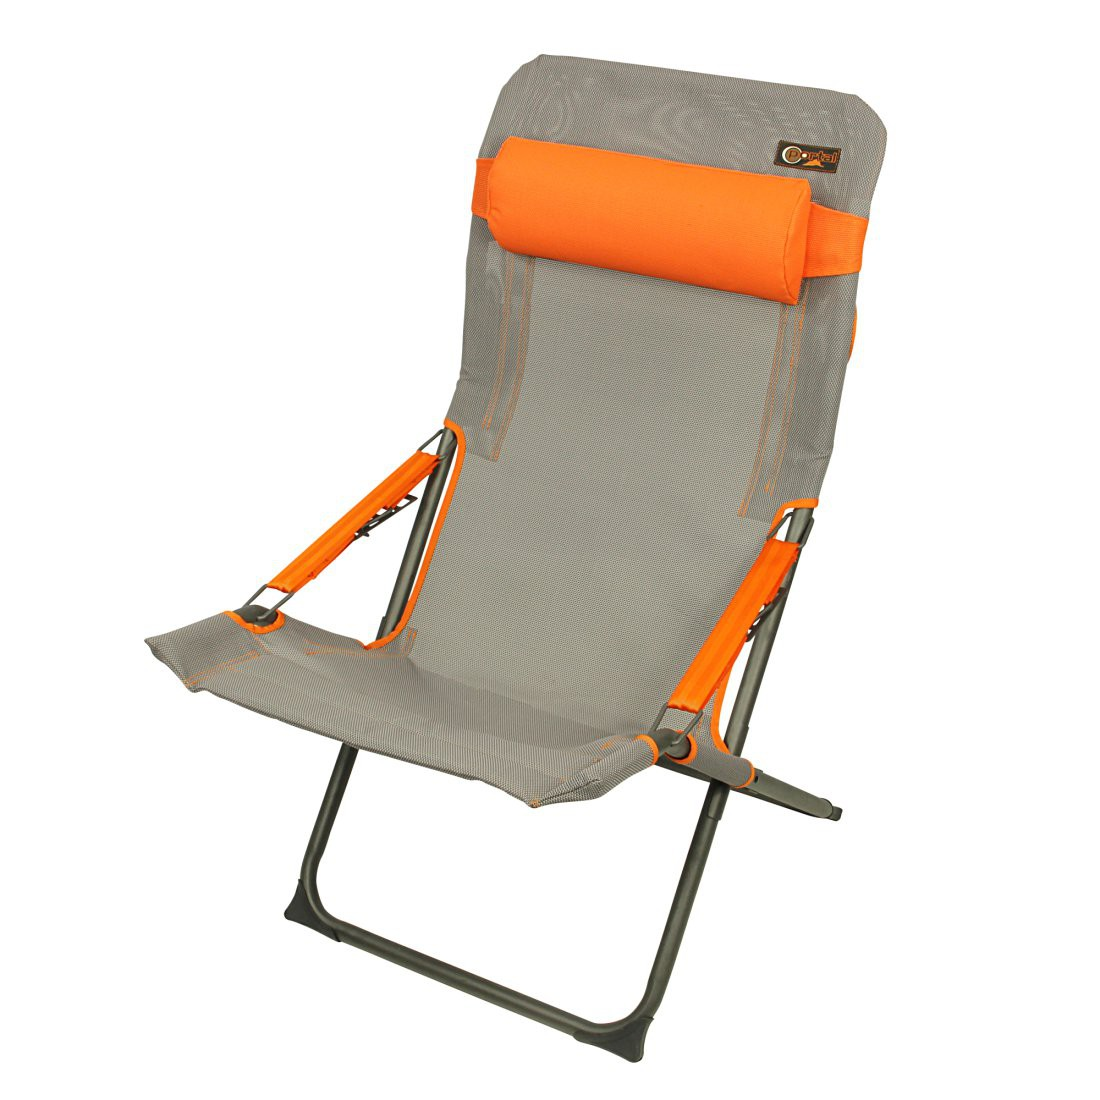 folding chair for massage cushion padded camping buy portal eddy sunlounger with head